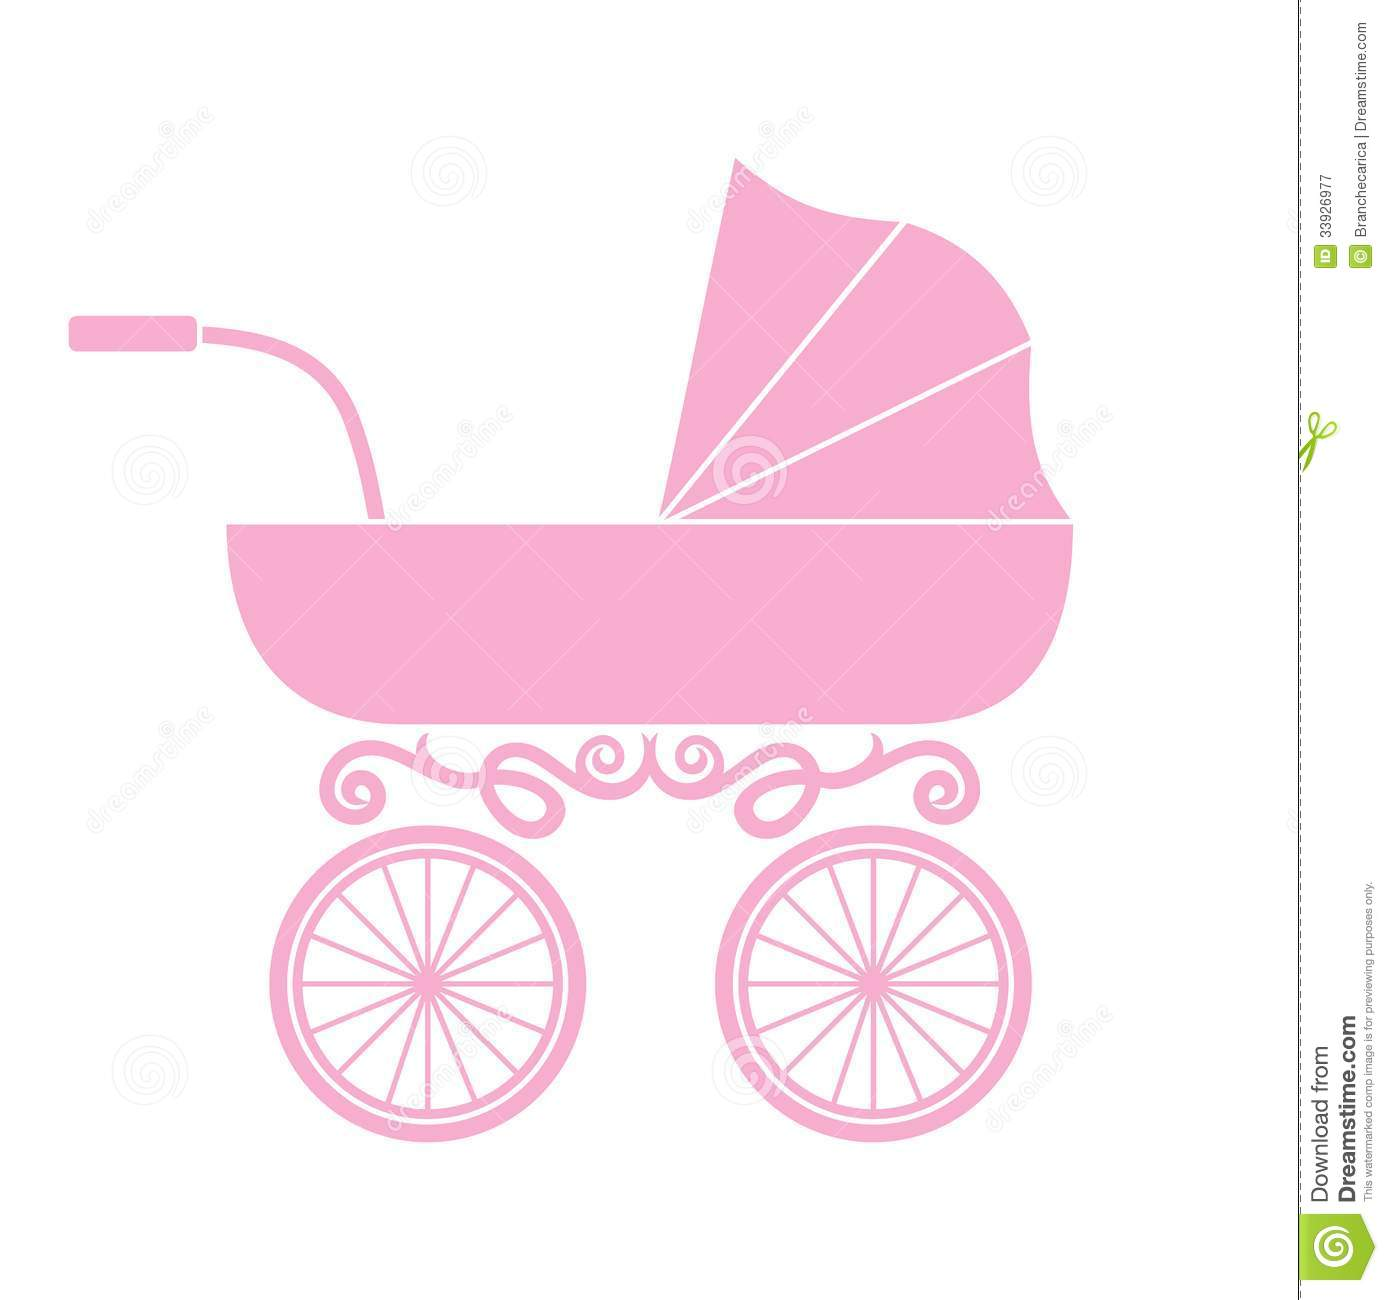 Pram - baby carriage stock vector. Illustration of blue - 33926977